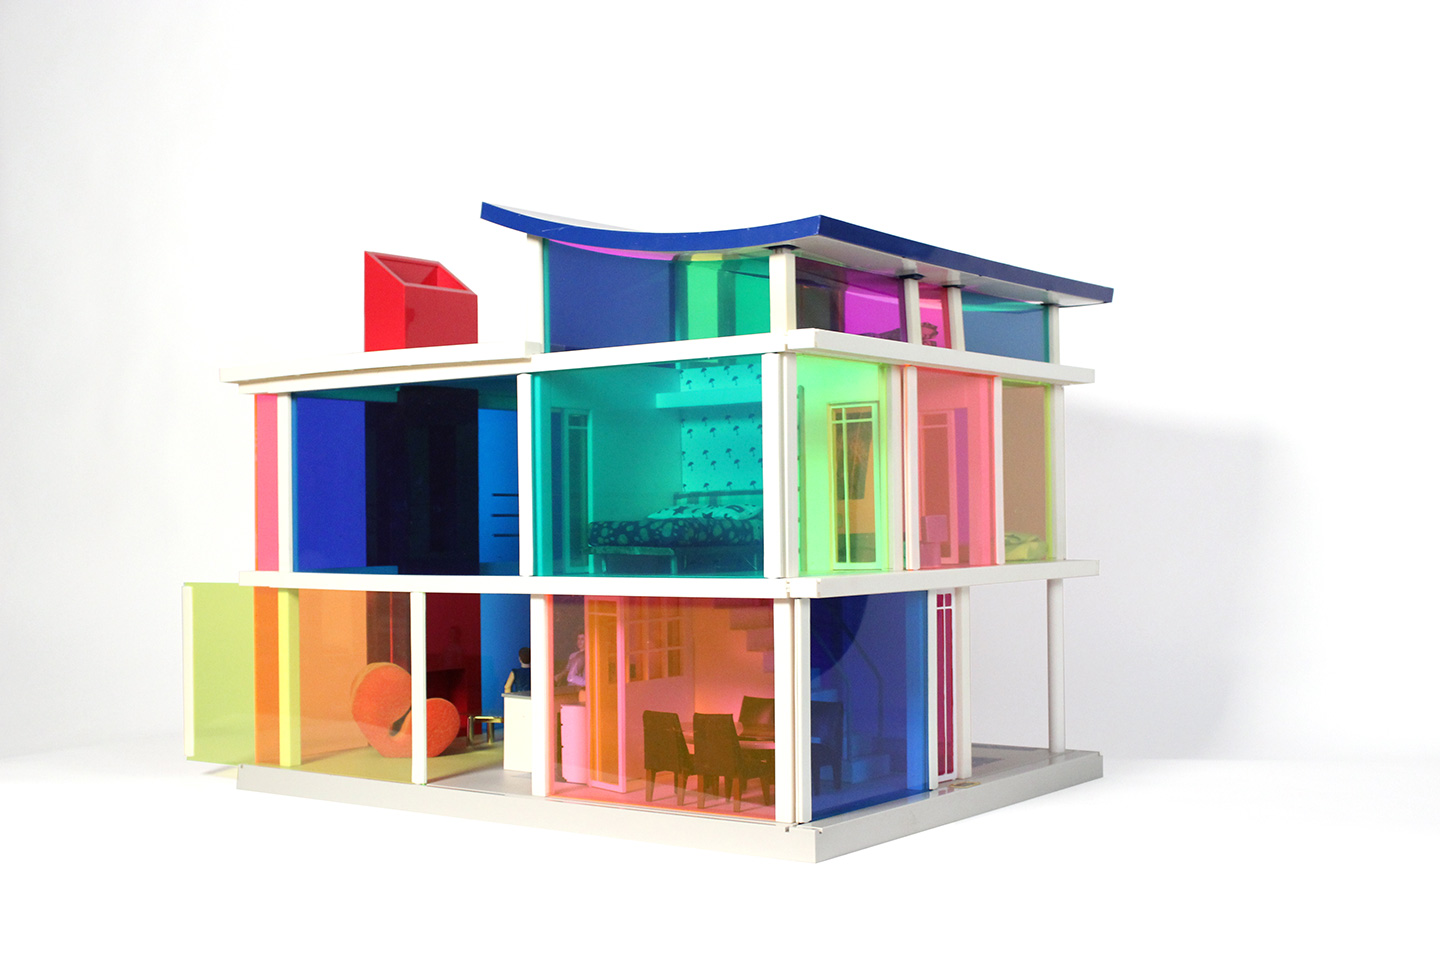 Kaleidoscope Dollhouse designed by Laurie Simmons and Peter Wheelwright.